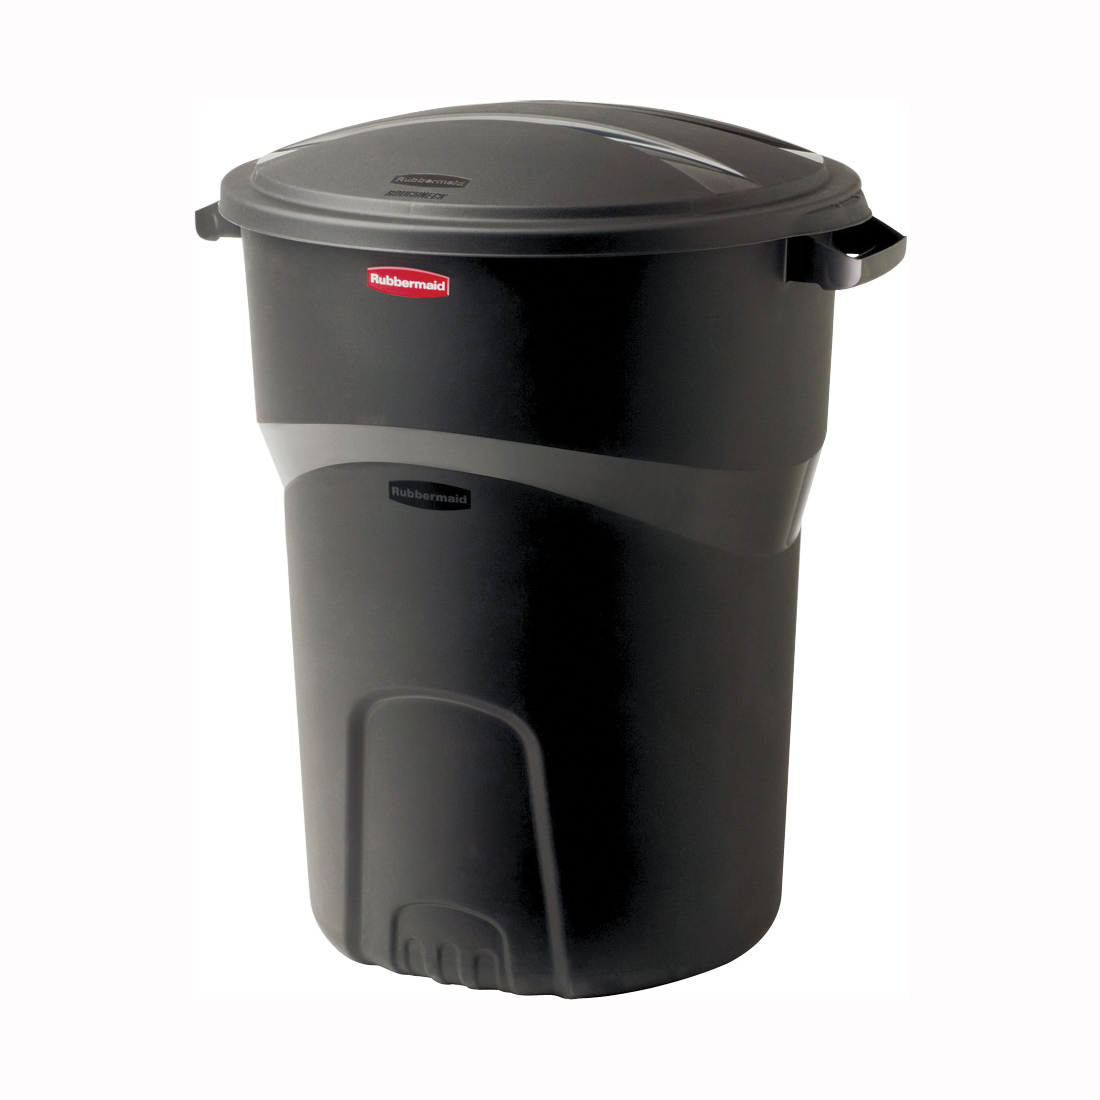 Picture of Rubbermaid 1793963 Refuse Container, 32 gal Capacity, Plastic, Black, Friction Lid Closure